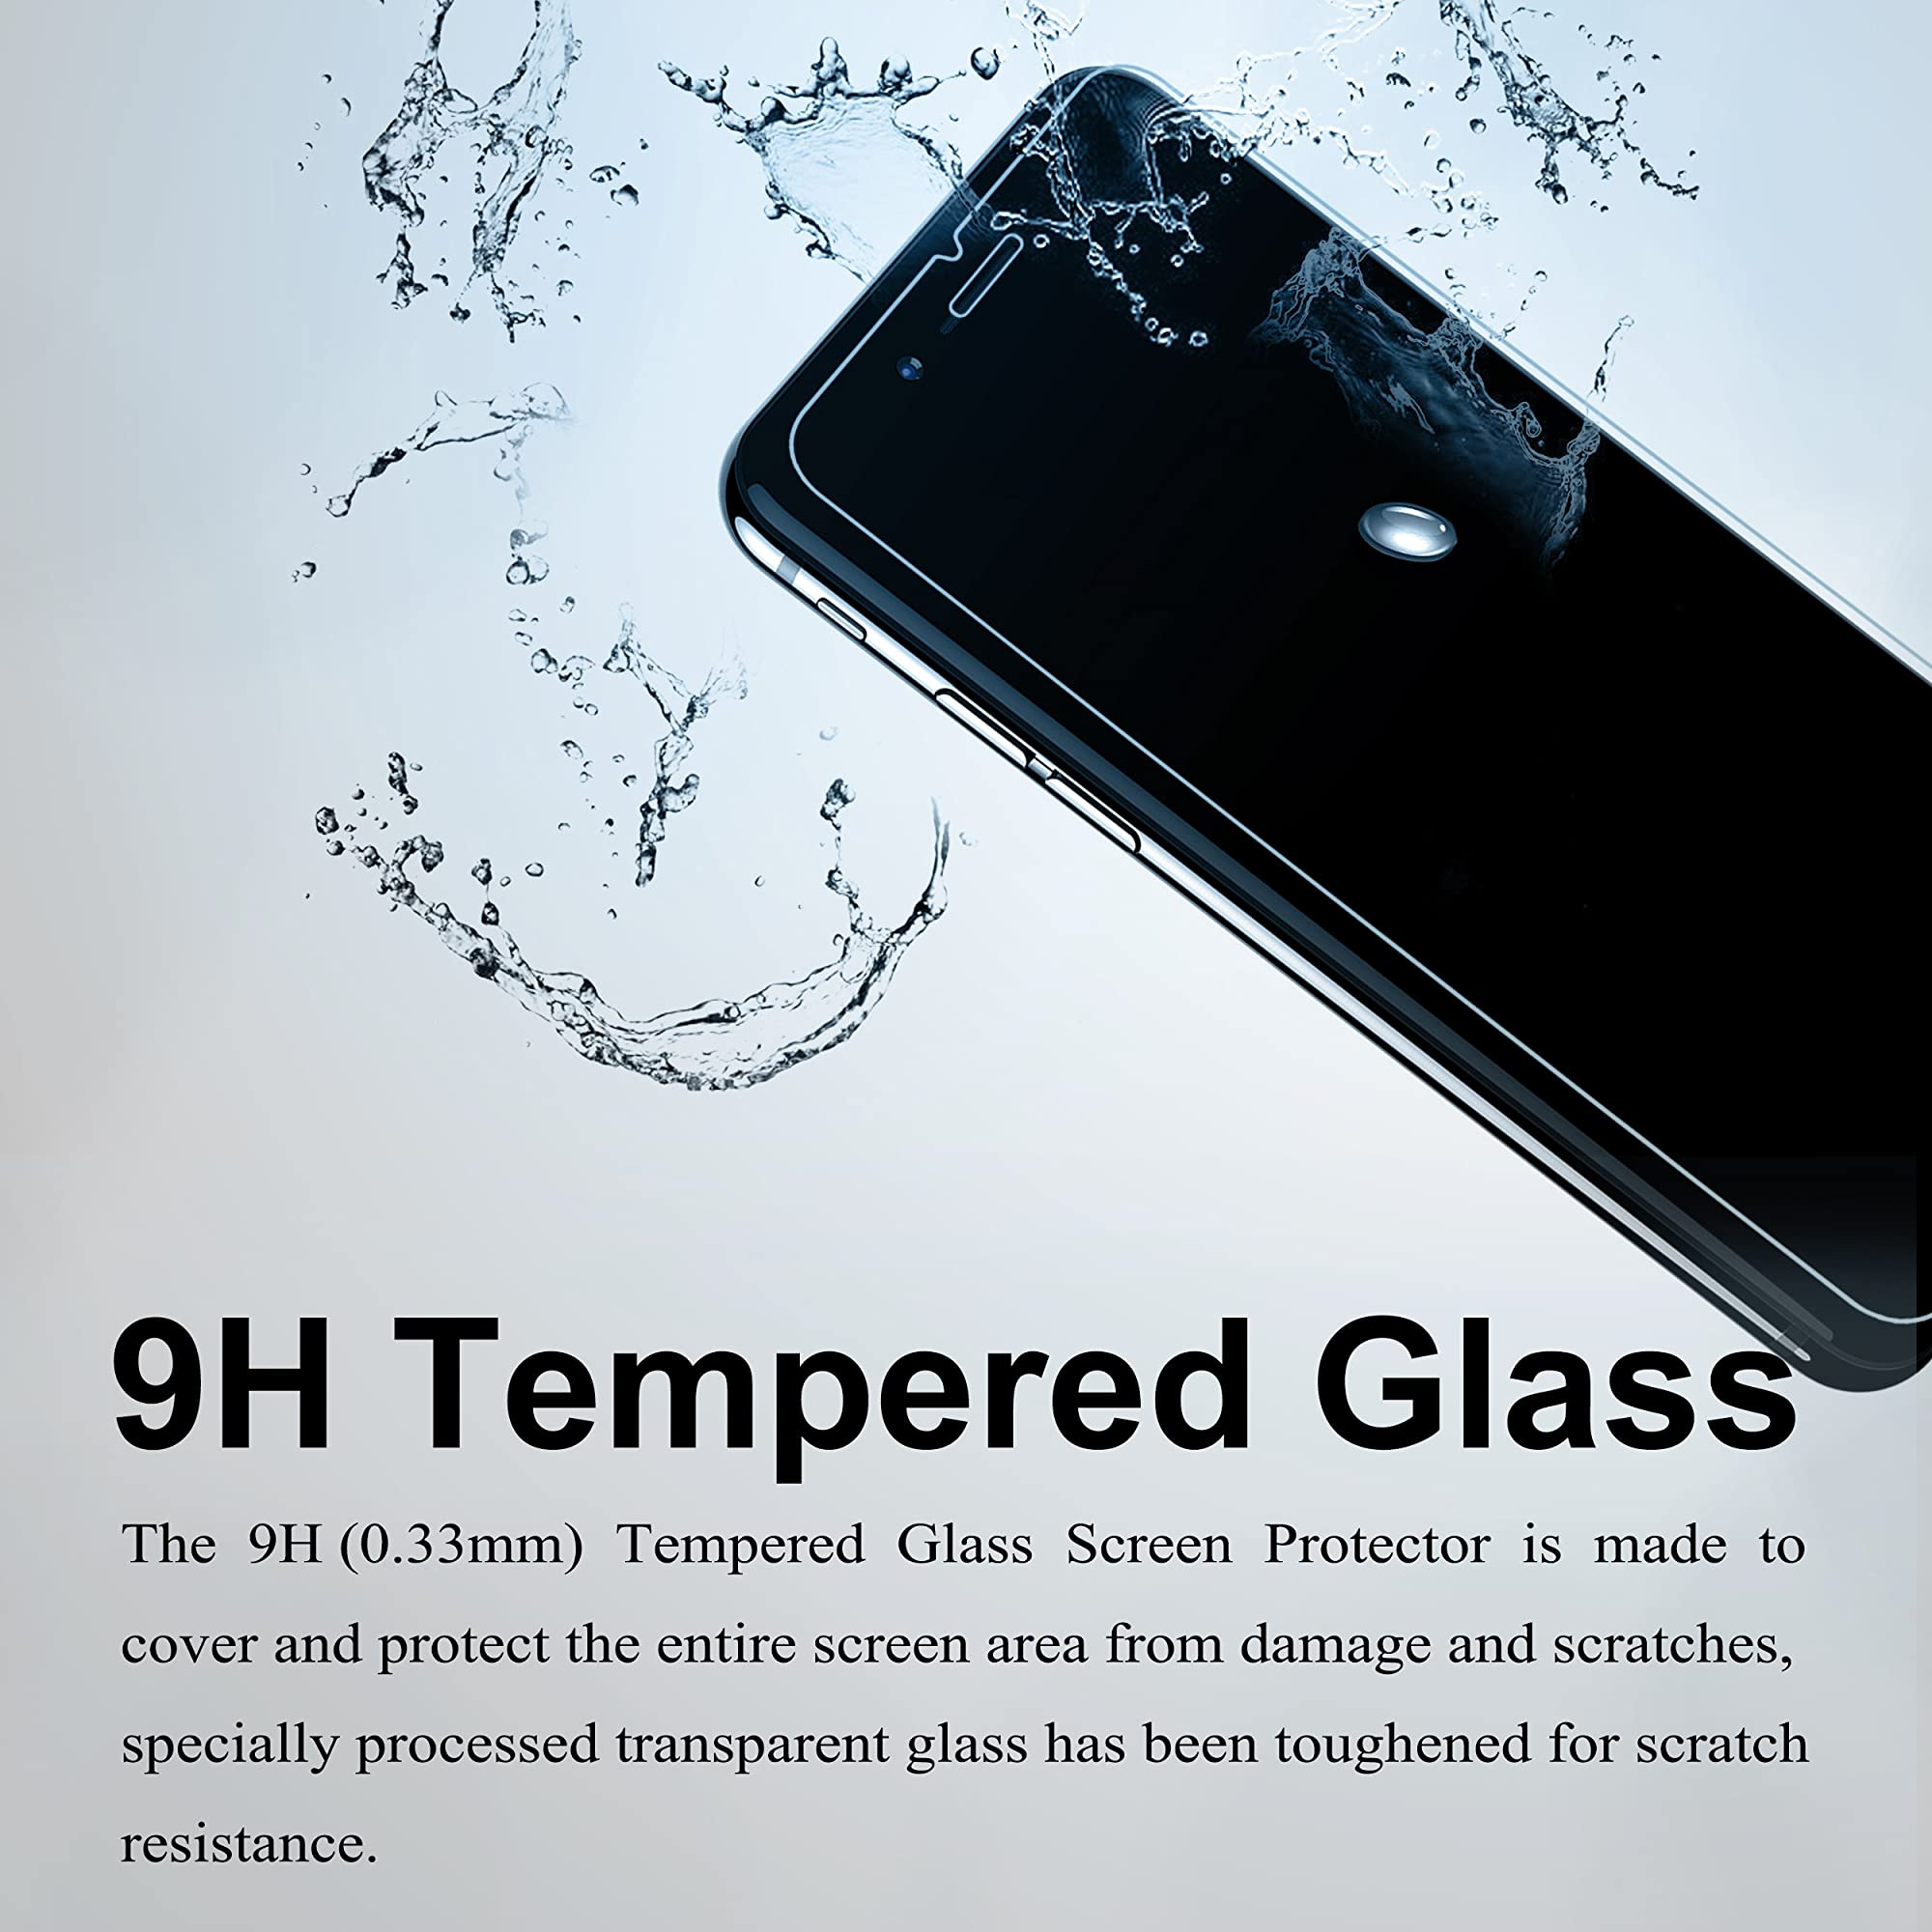 Screen Protector With Tempered Edge Glass And Anti-Scratch Case.